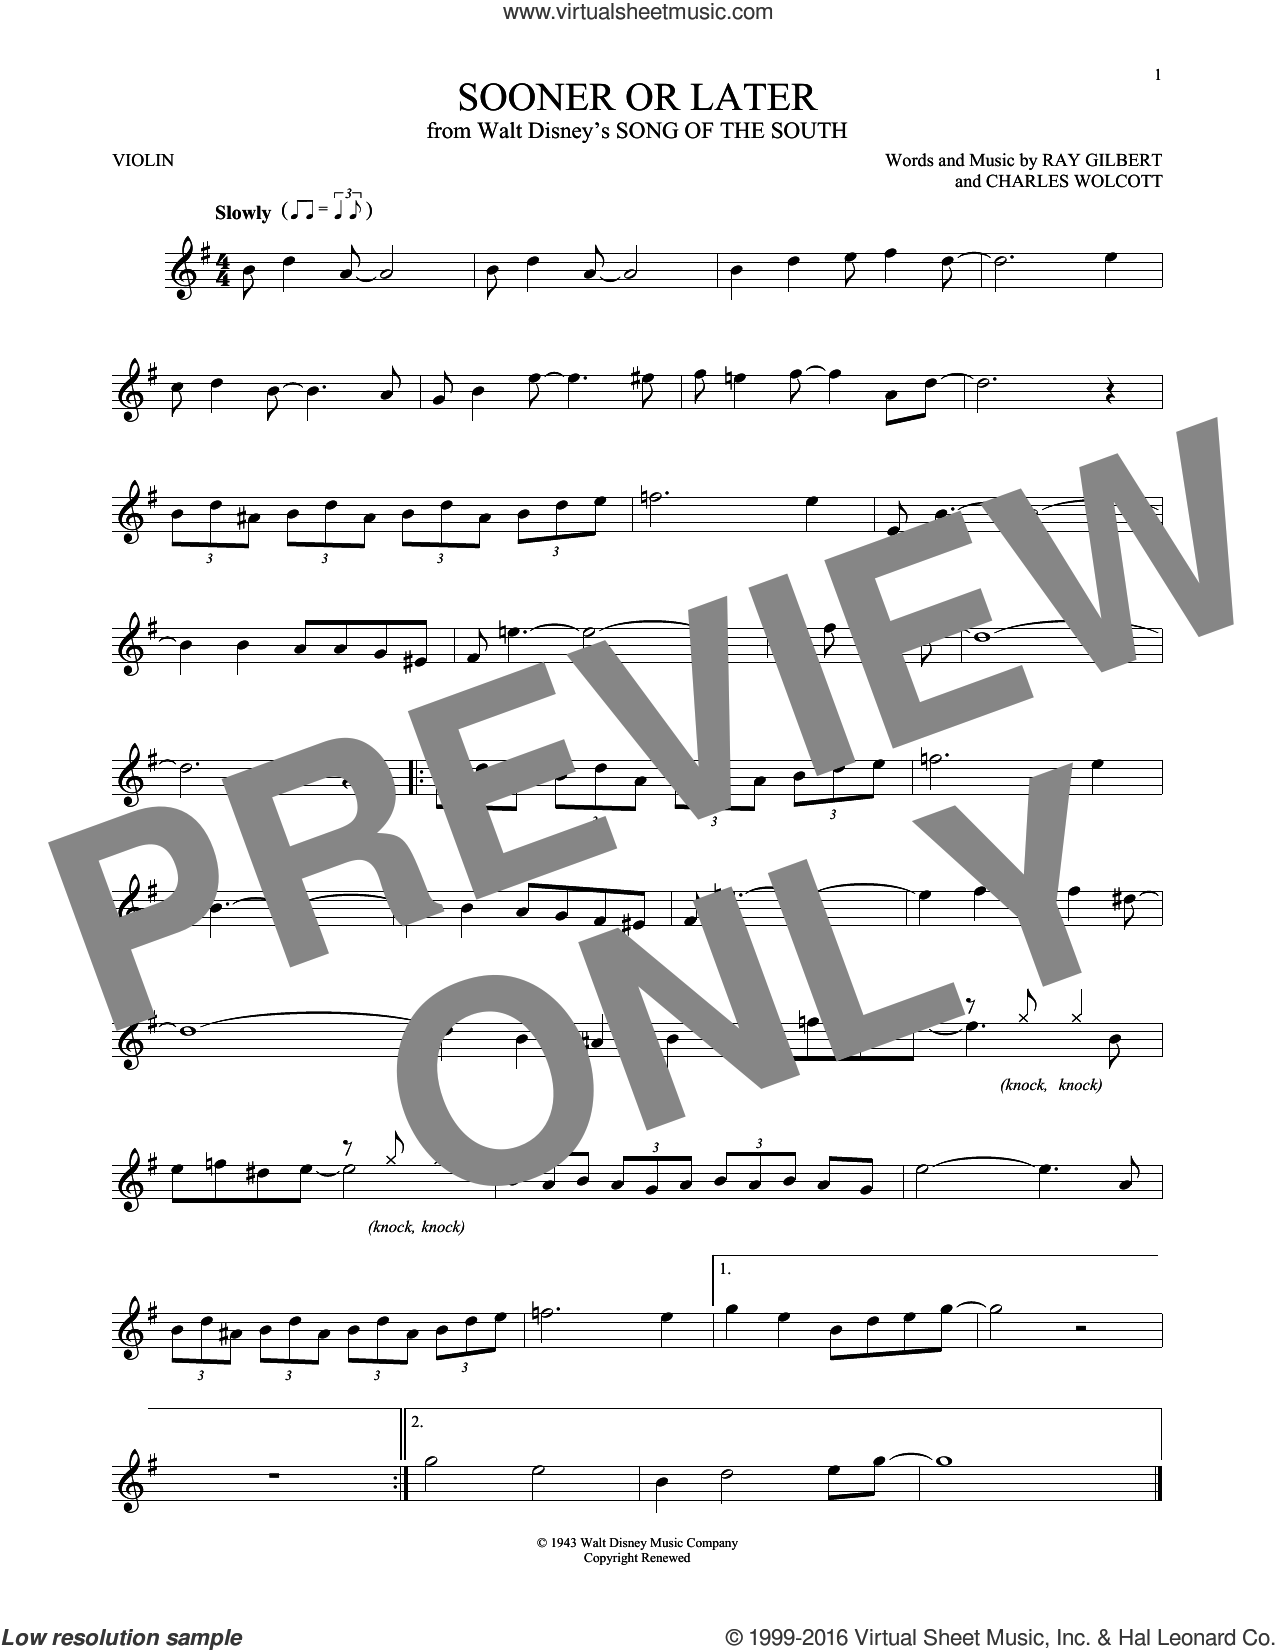 Sooner Or Later sheet music for violin solo by Ray Gilbert, Charles Wolcott and Ray Gilbert & Charles Wolcott, intermediate skill level